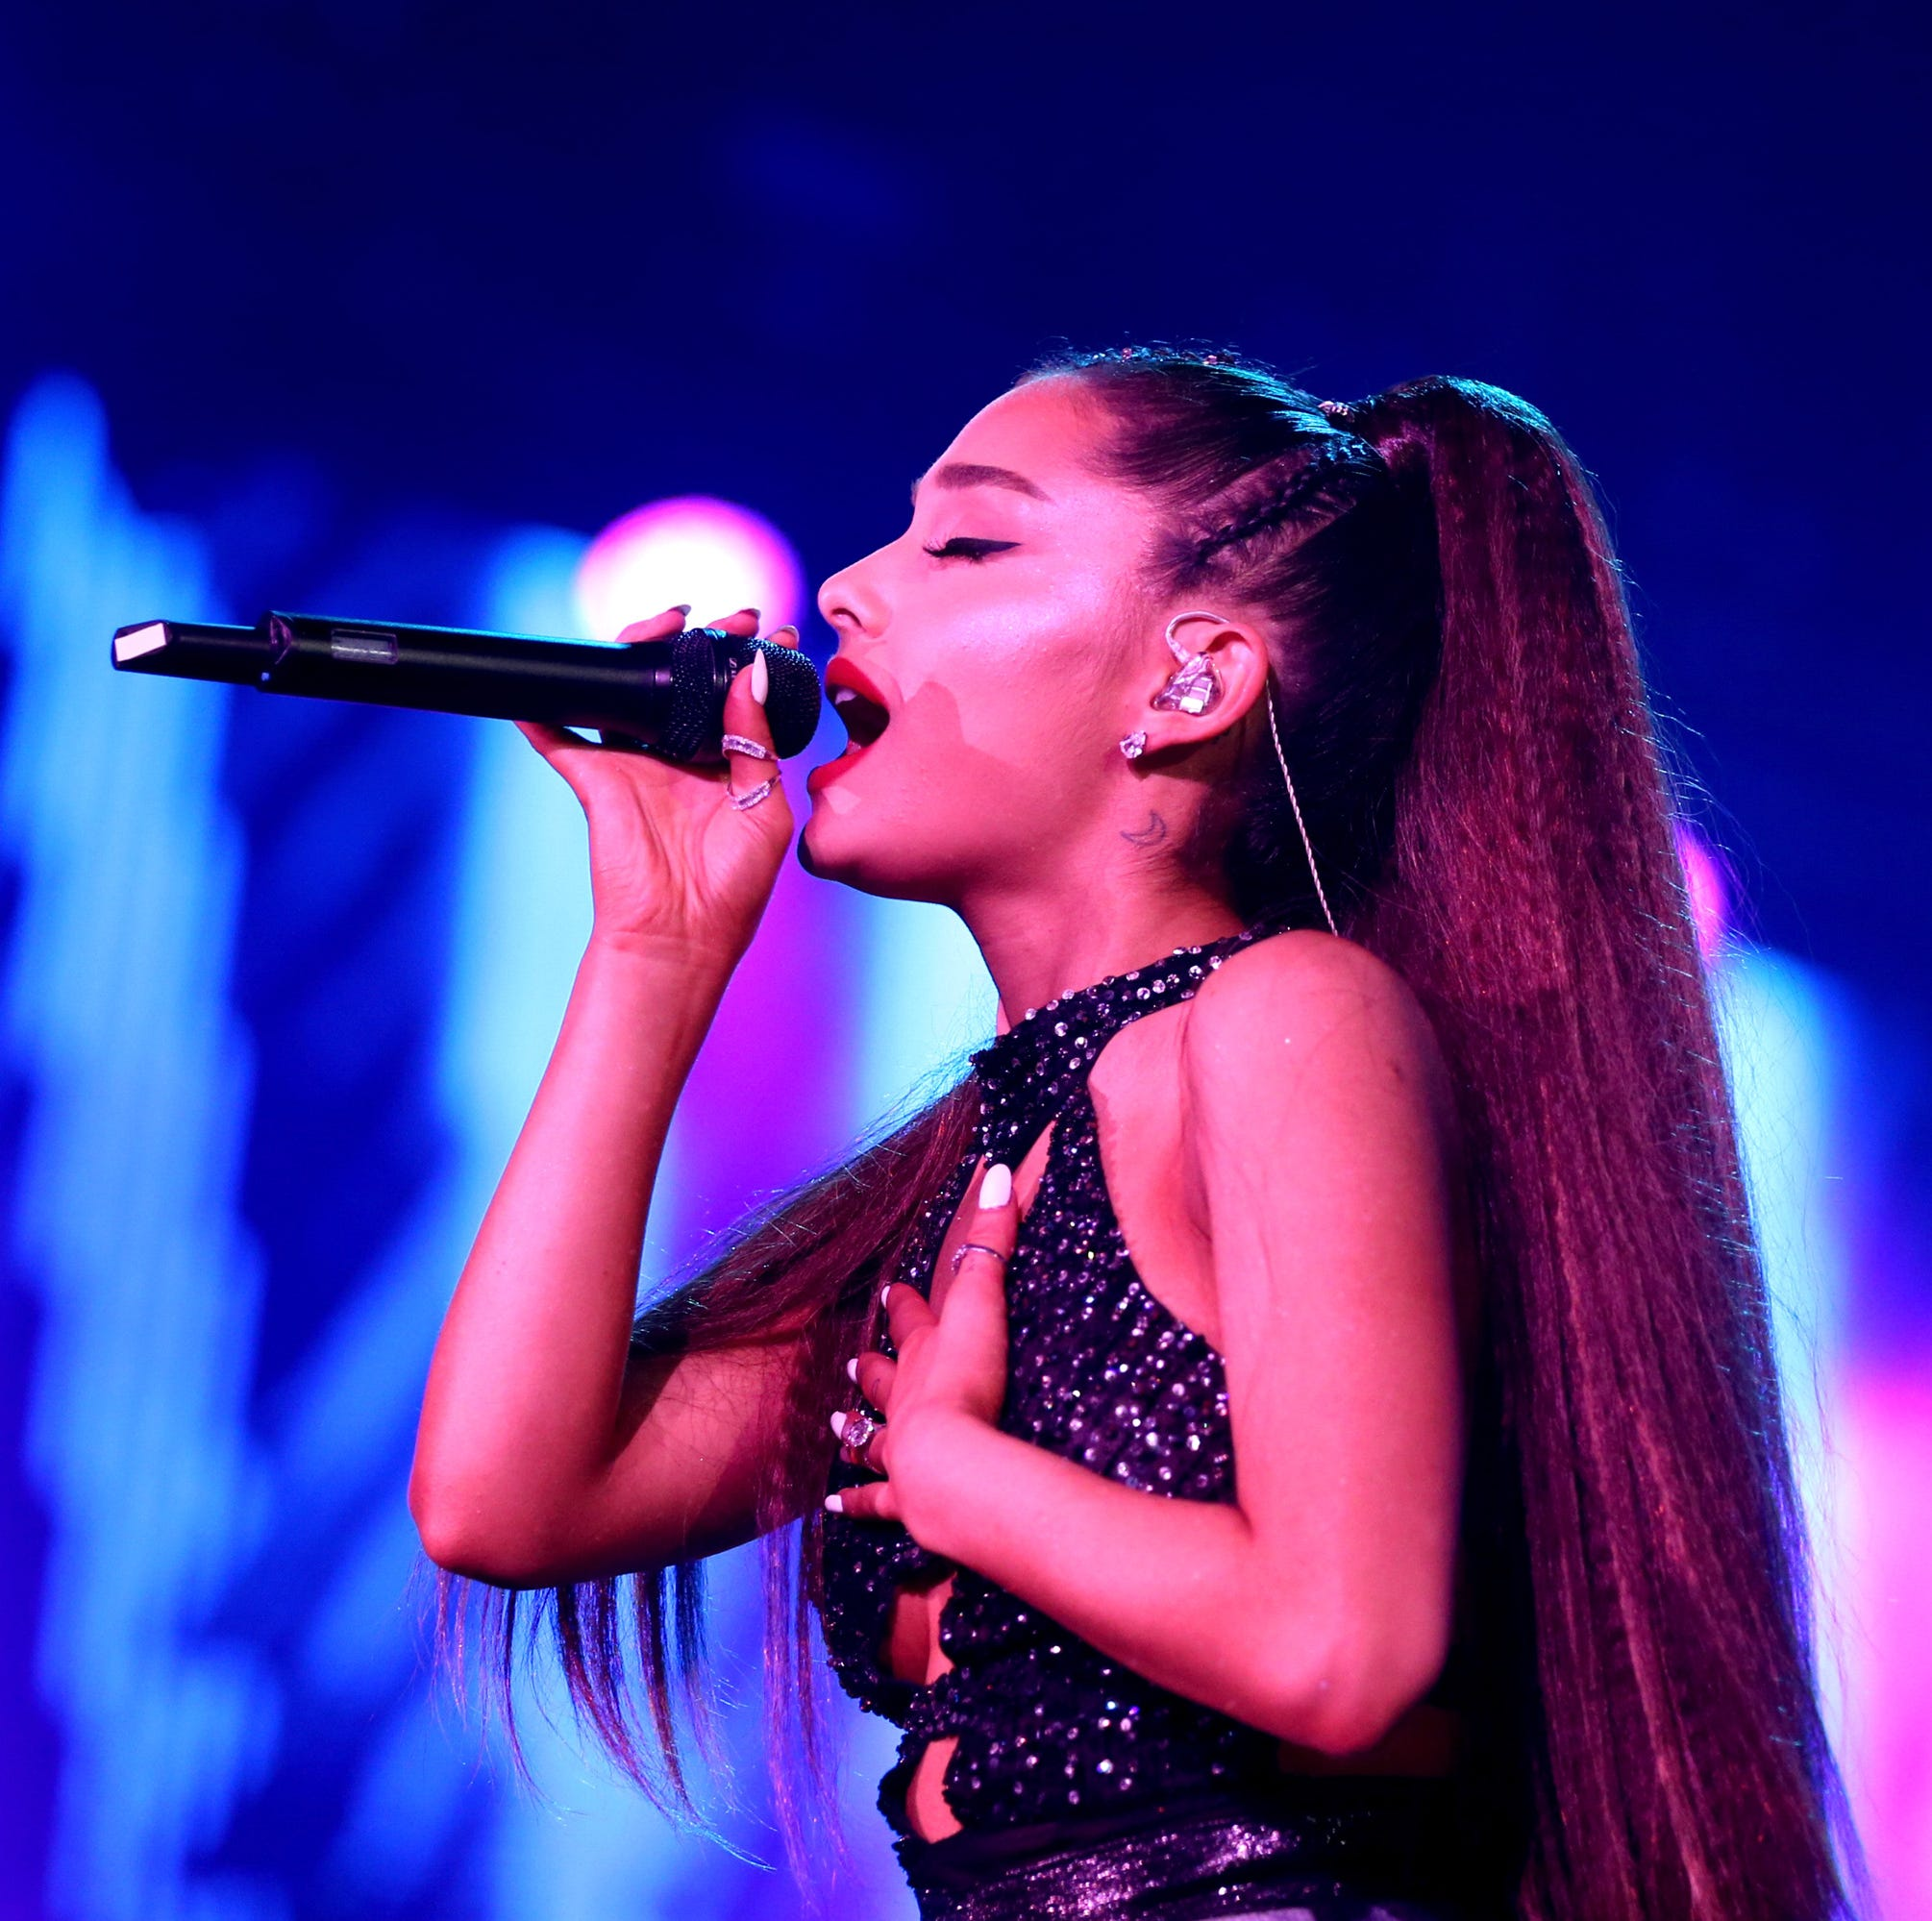 LOS ANGELES, CA - JUNE 02:  (EDITORIAL USE ONLY. NO COMMERCIAL USE) Ariana Grande performs onstage during the 2018 iHeartRadio Wango Tango by AT&T at Banc of California Stadium on June 2, 2018 in Los Angeles, California.  (Photo by Rich Polk/Getty Images for iHeartMedia ) ORG XMIT: 775172379 ORIG FILE ID: 966544726